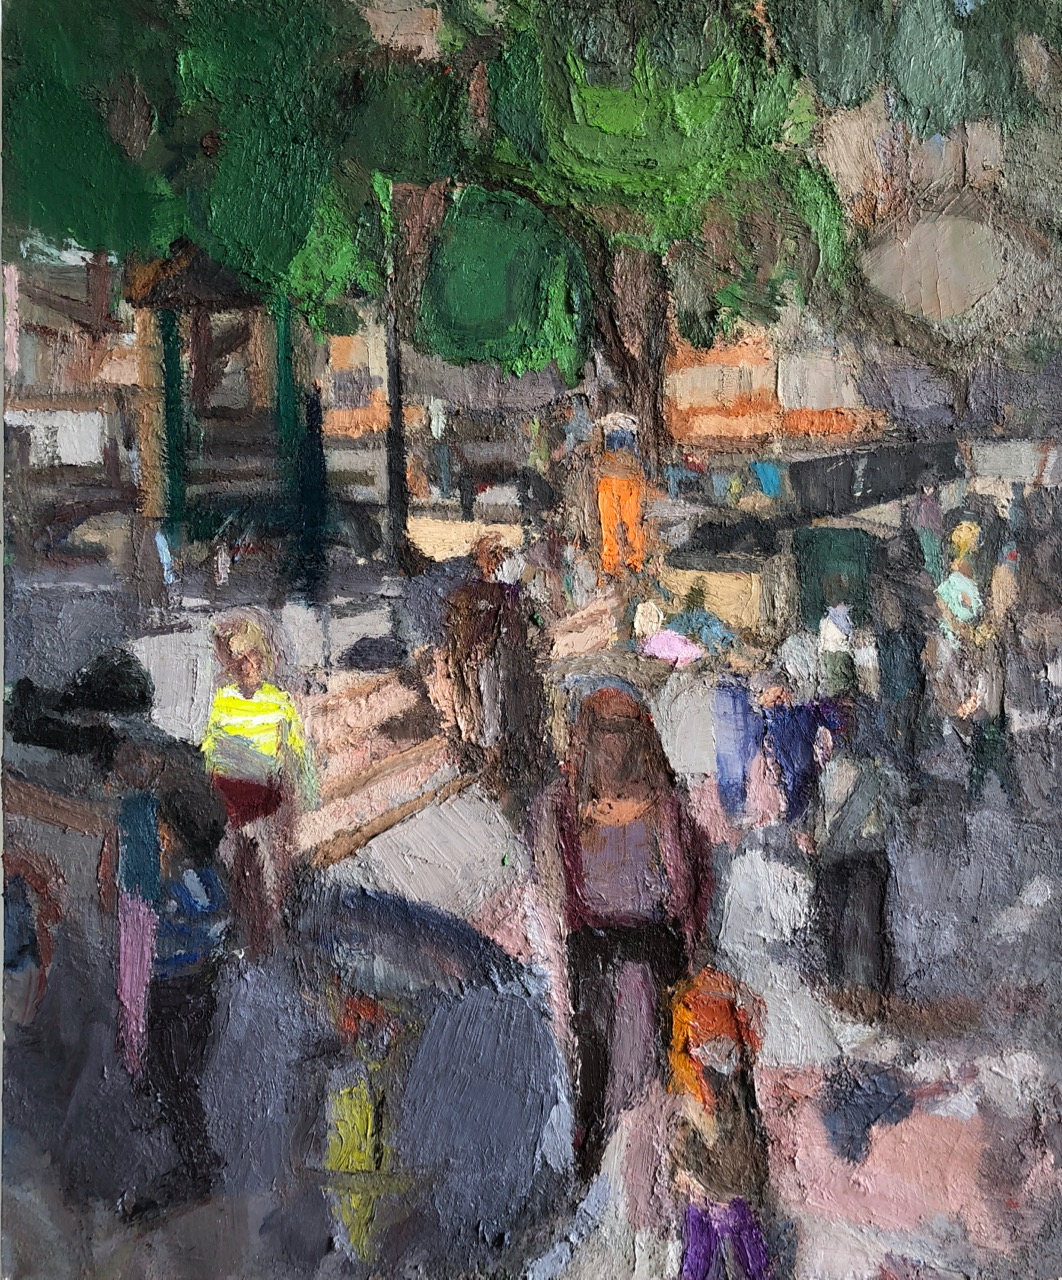 Playground, 2012-18, 72 x 60 inches, oil on linen